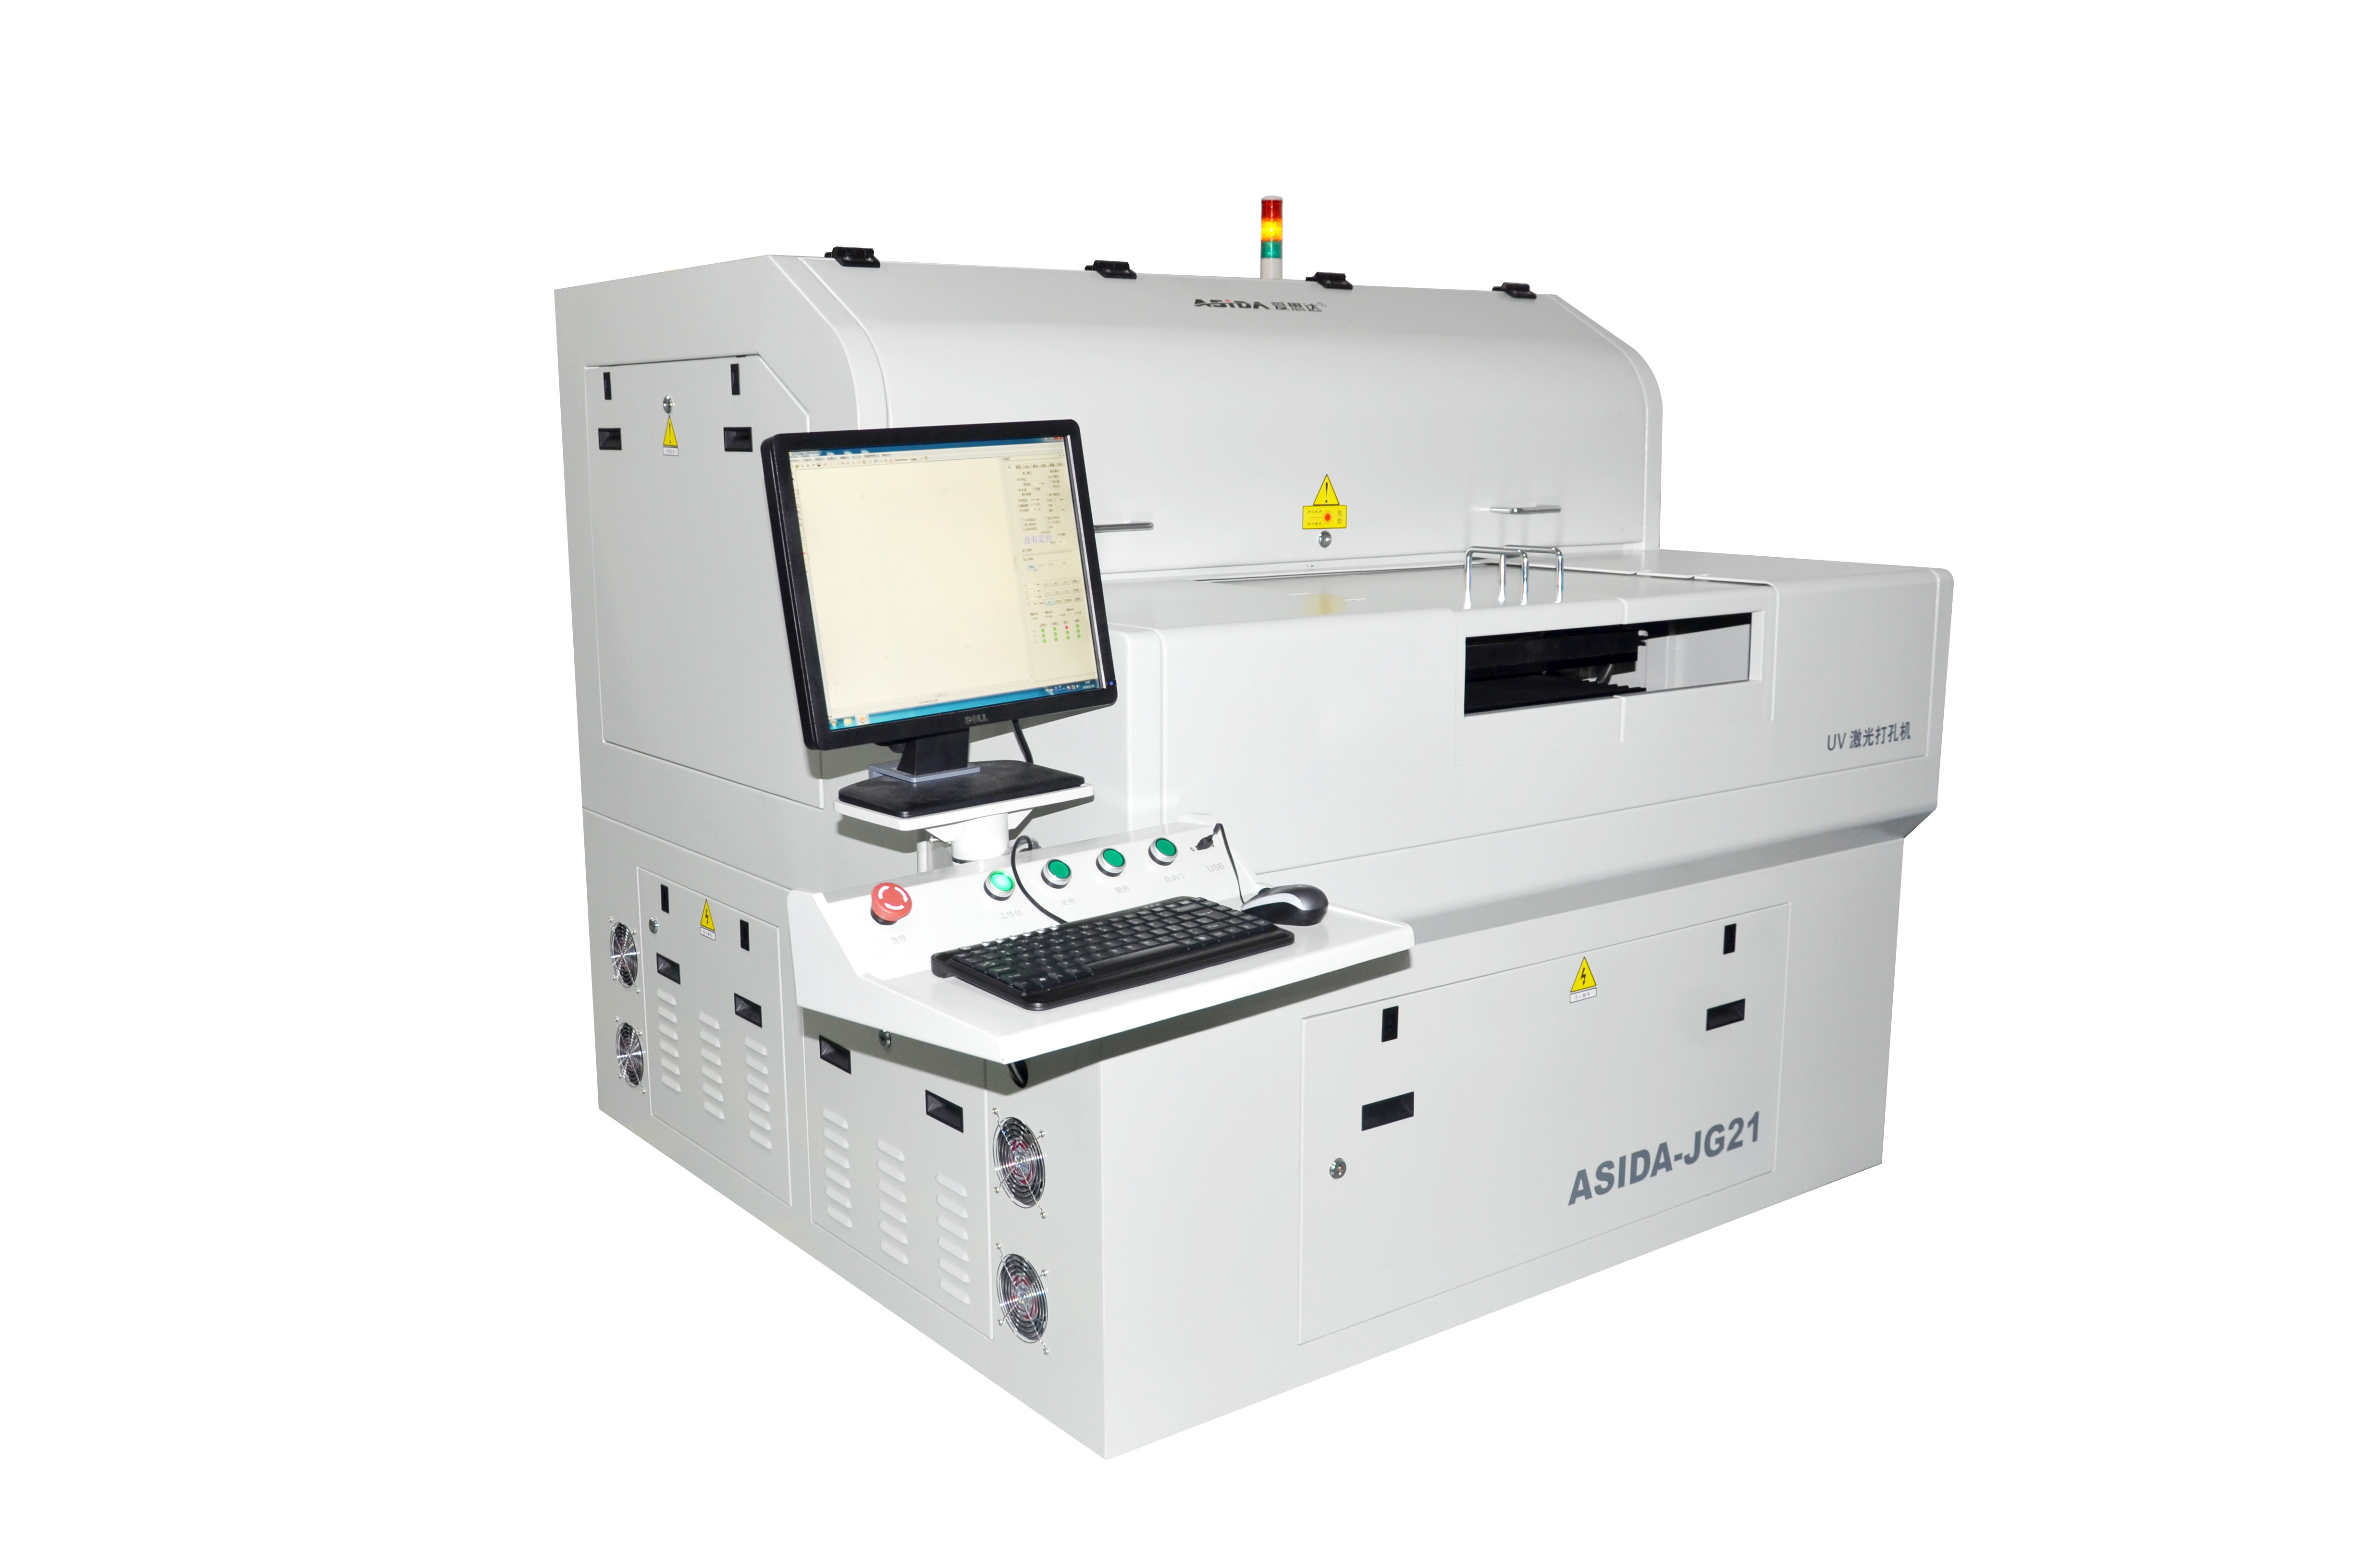 Pcb Manufacturing Equipments Cutting Machine Welcome To The China Flexible Printed Circuit Board Fpcb Fpc Uv Laser Drilling Jg21